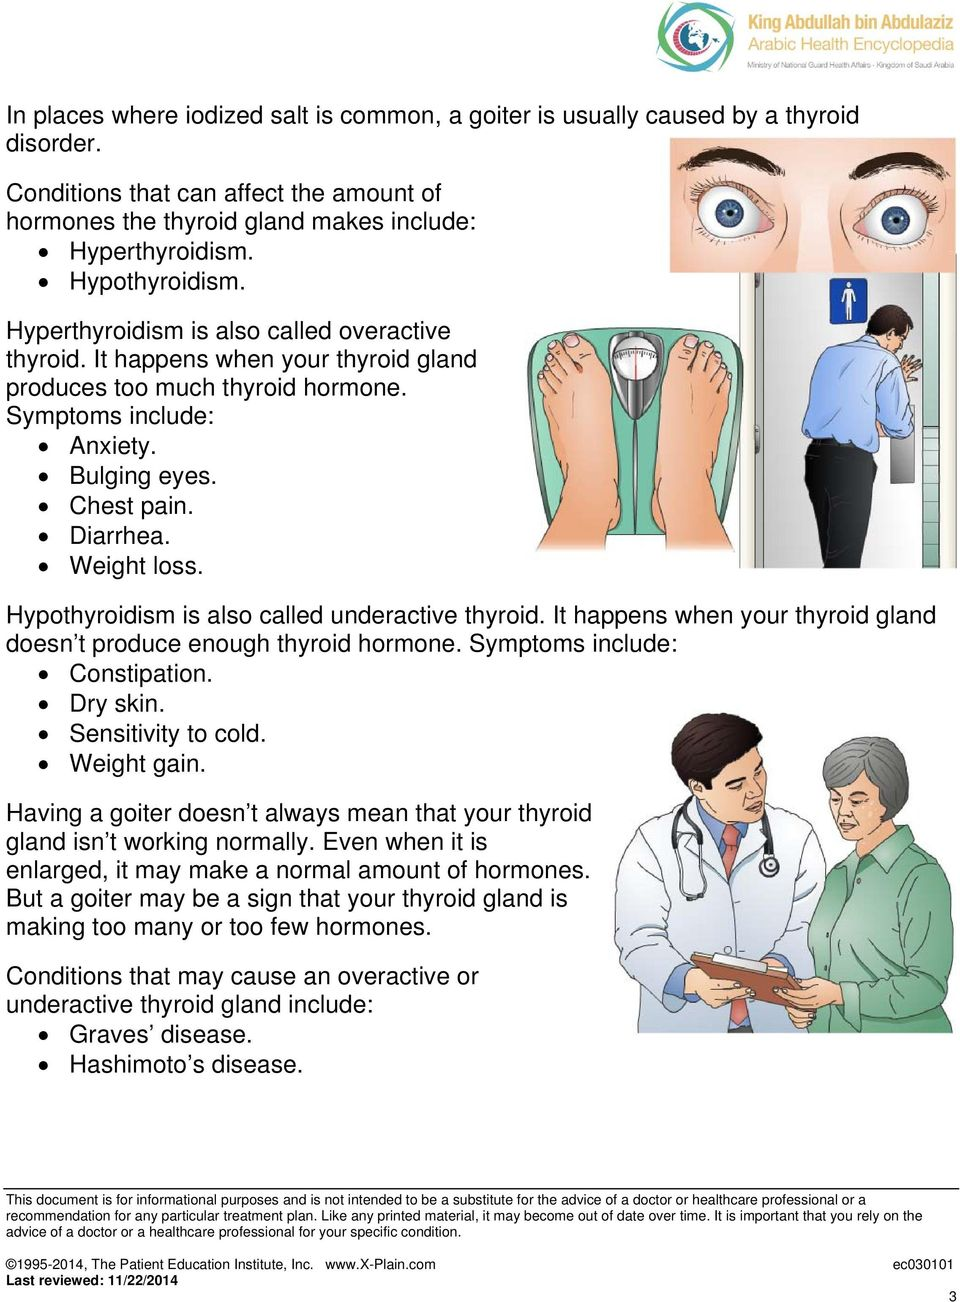 Weight loss. Hypothyroidism is also called underactive thyroid. It happens when your thyroid gland doesn t produce enough thyroid hormone. Symptoms include: Constipation. Dry skin.